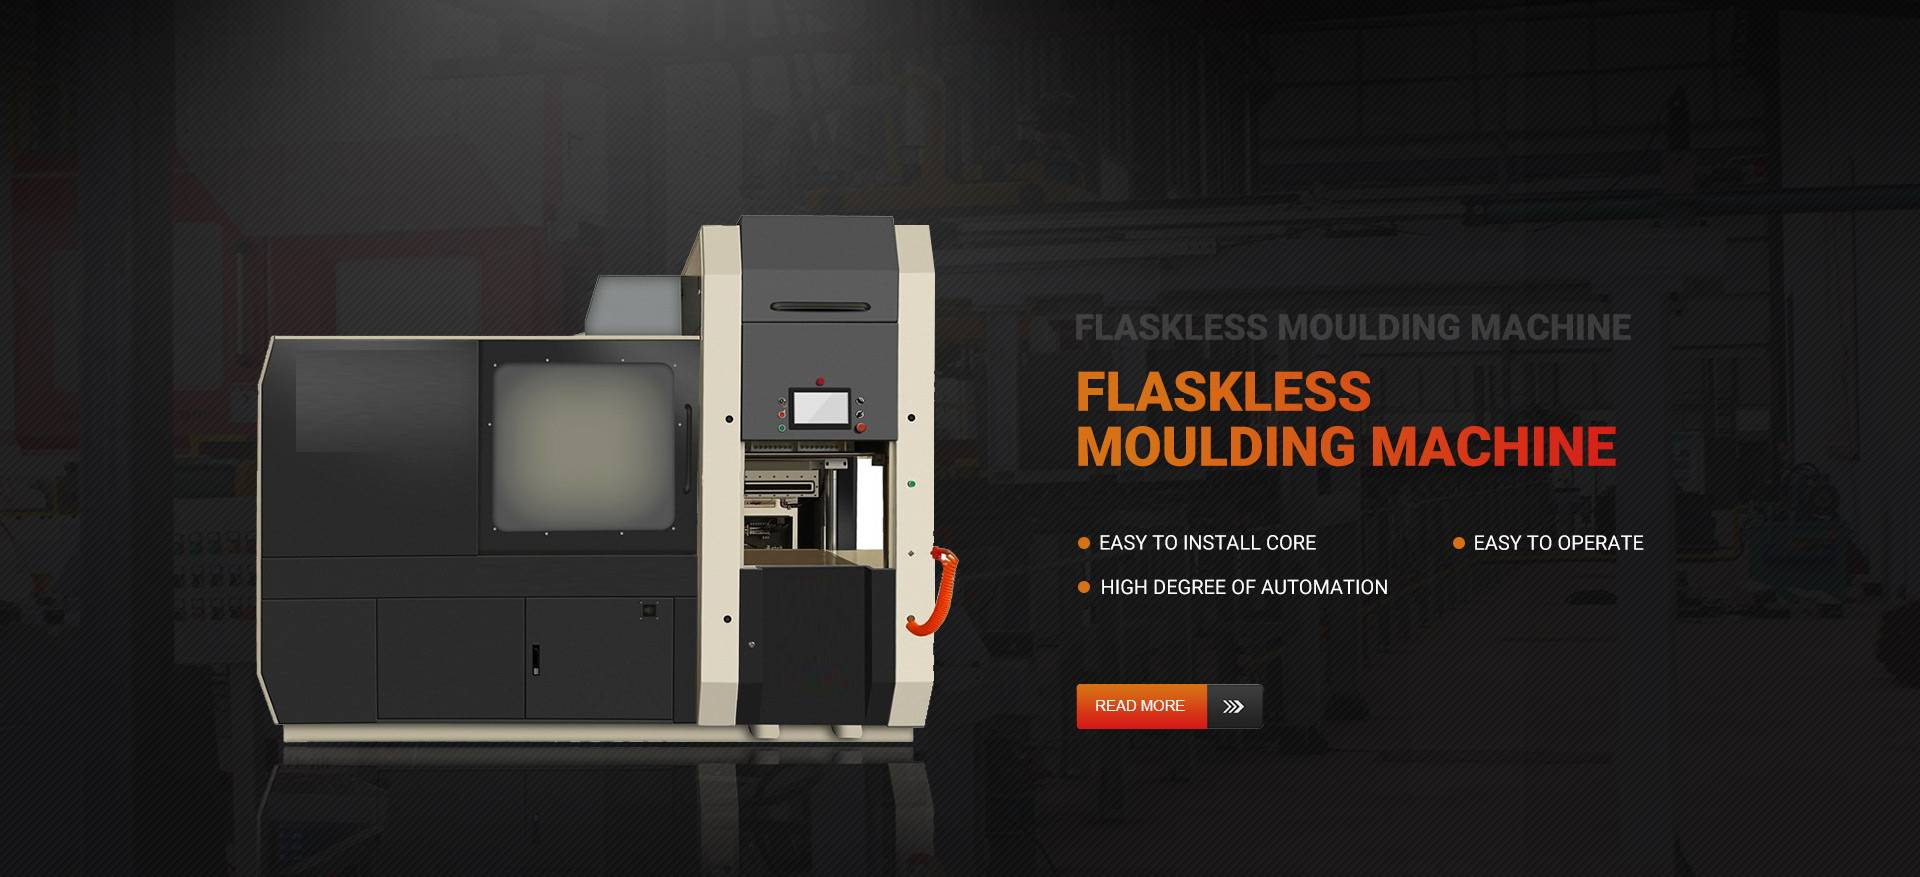 Flaskless Moulding Machine